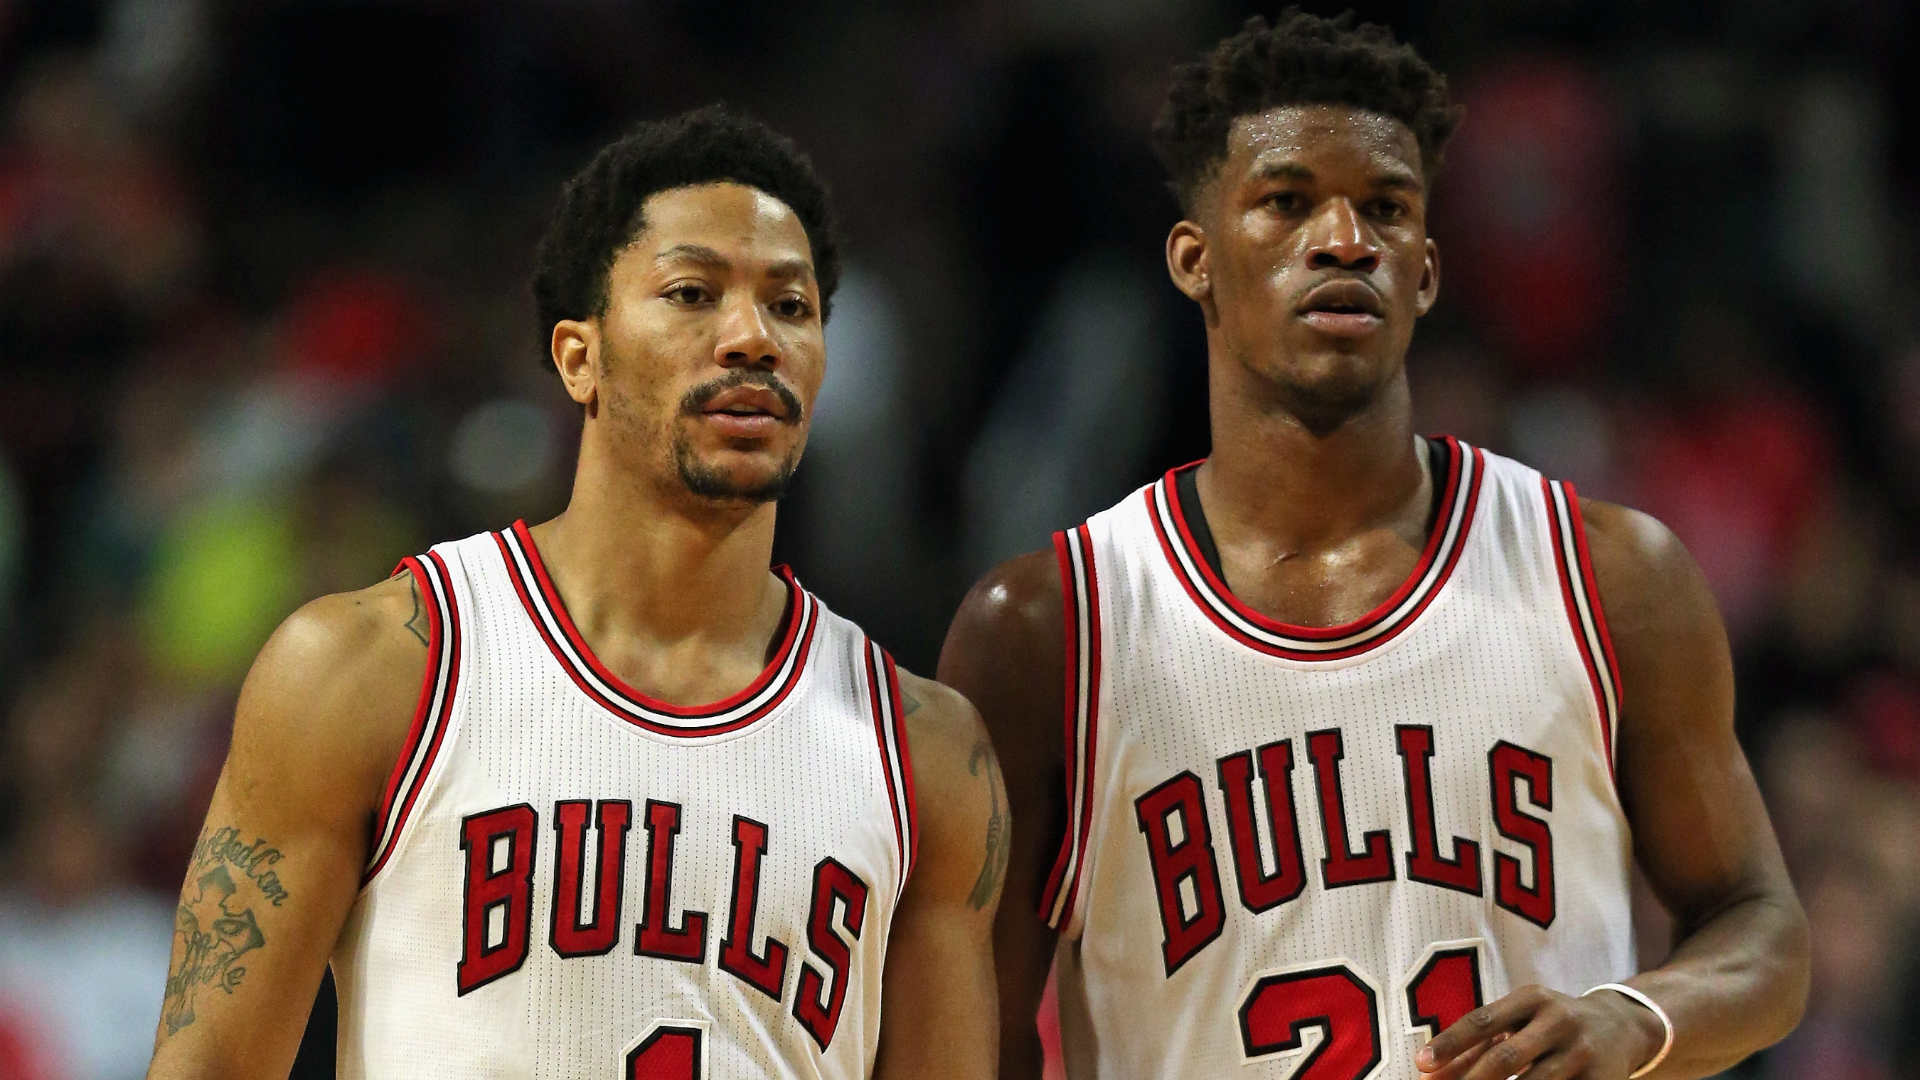 Derrick-Rose-Jimmy-Butler-07092015-US-News-Getty-FTR